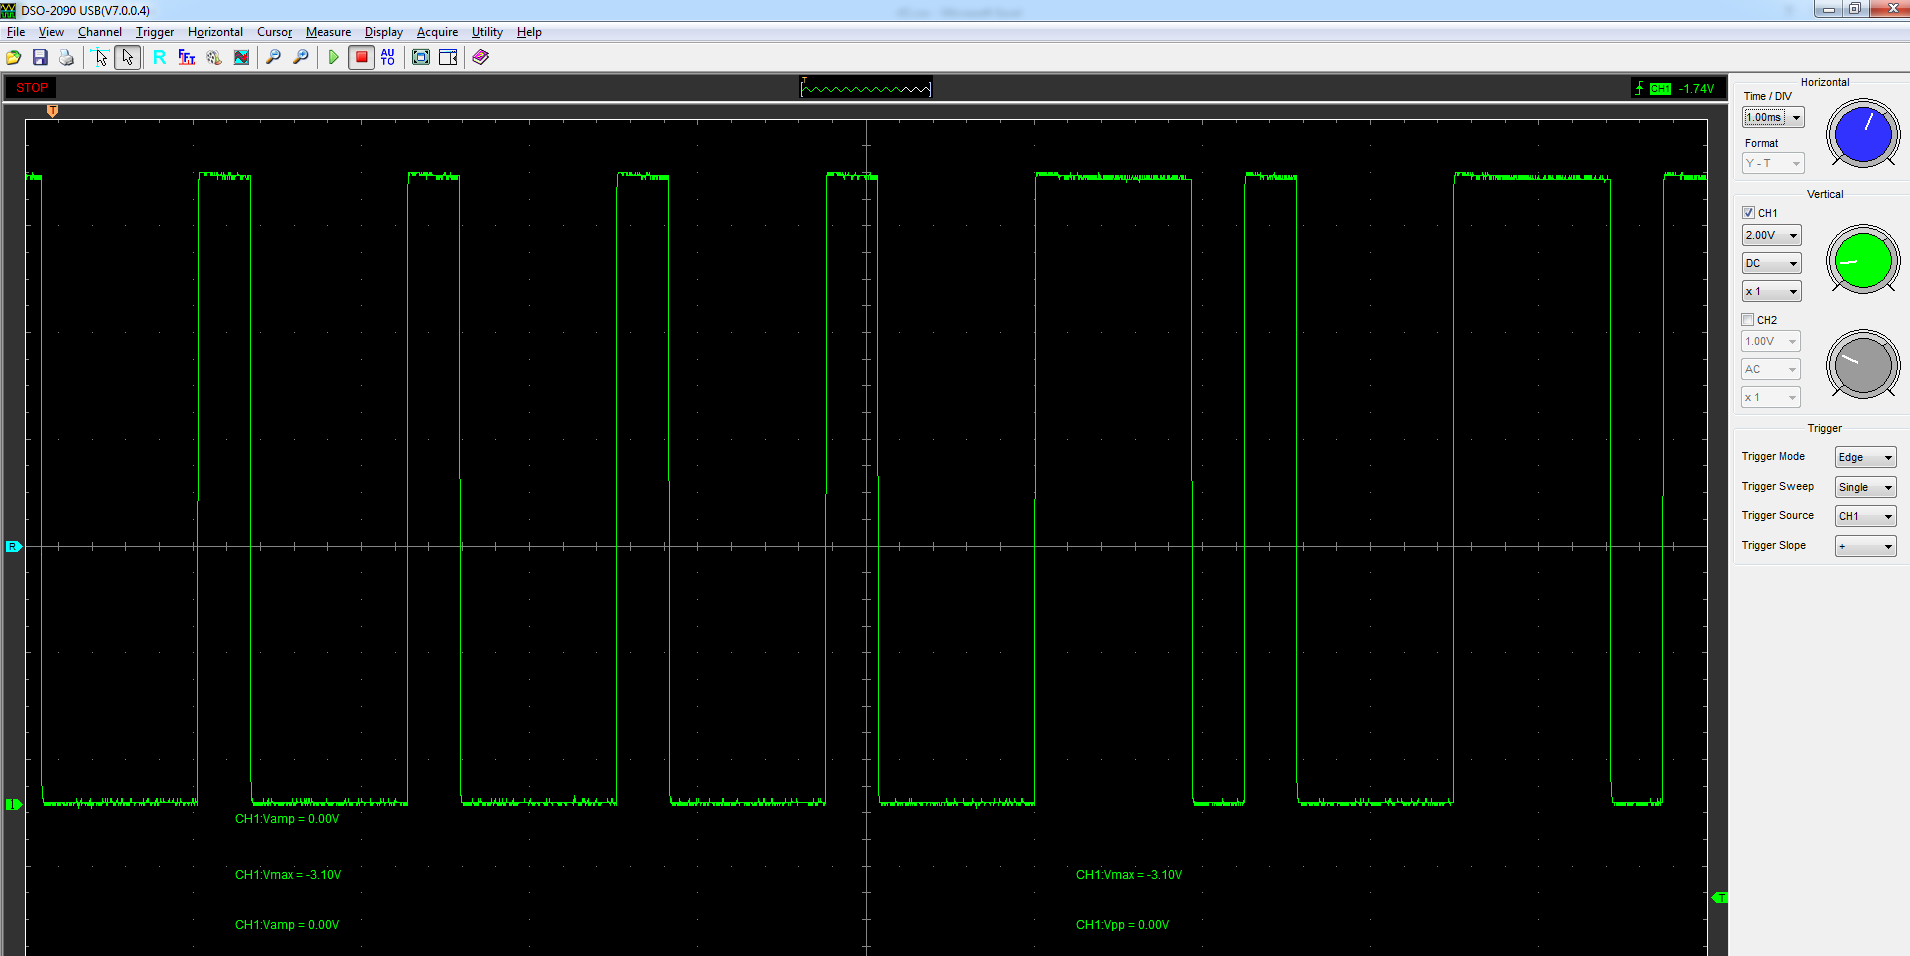 Raspberry Pi Hdhprojects Wiringpi Encoder Frame Zoom In